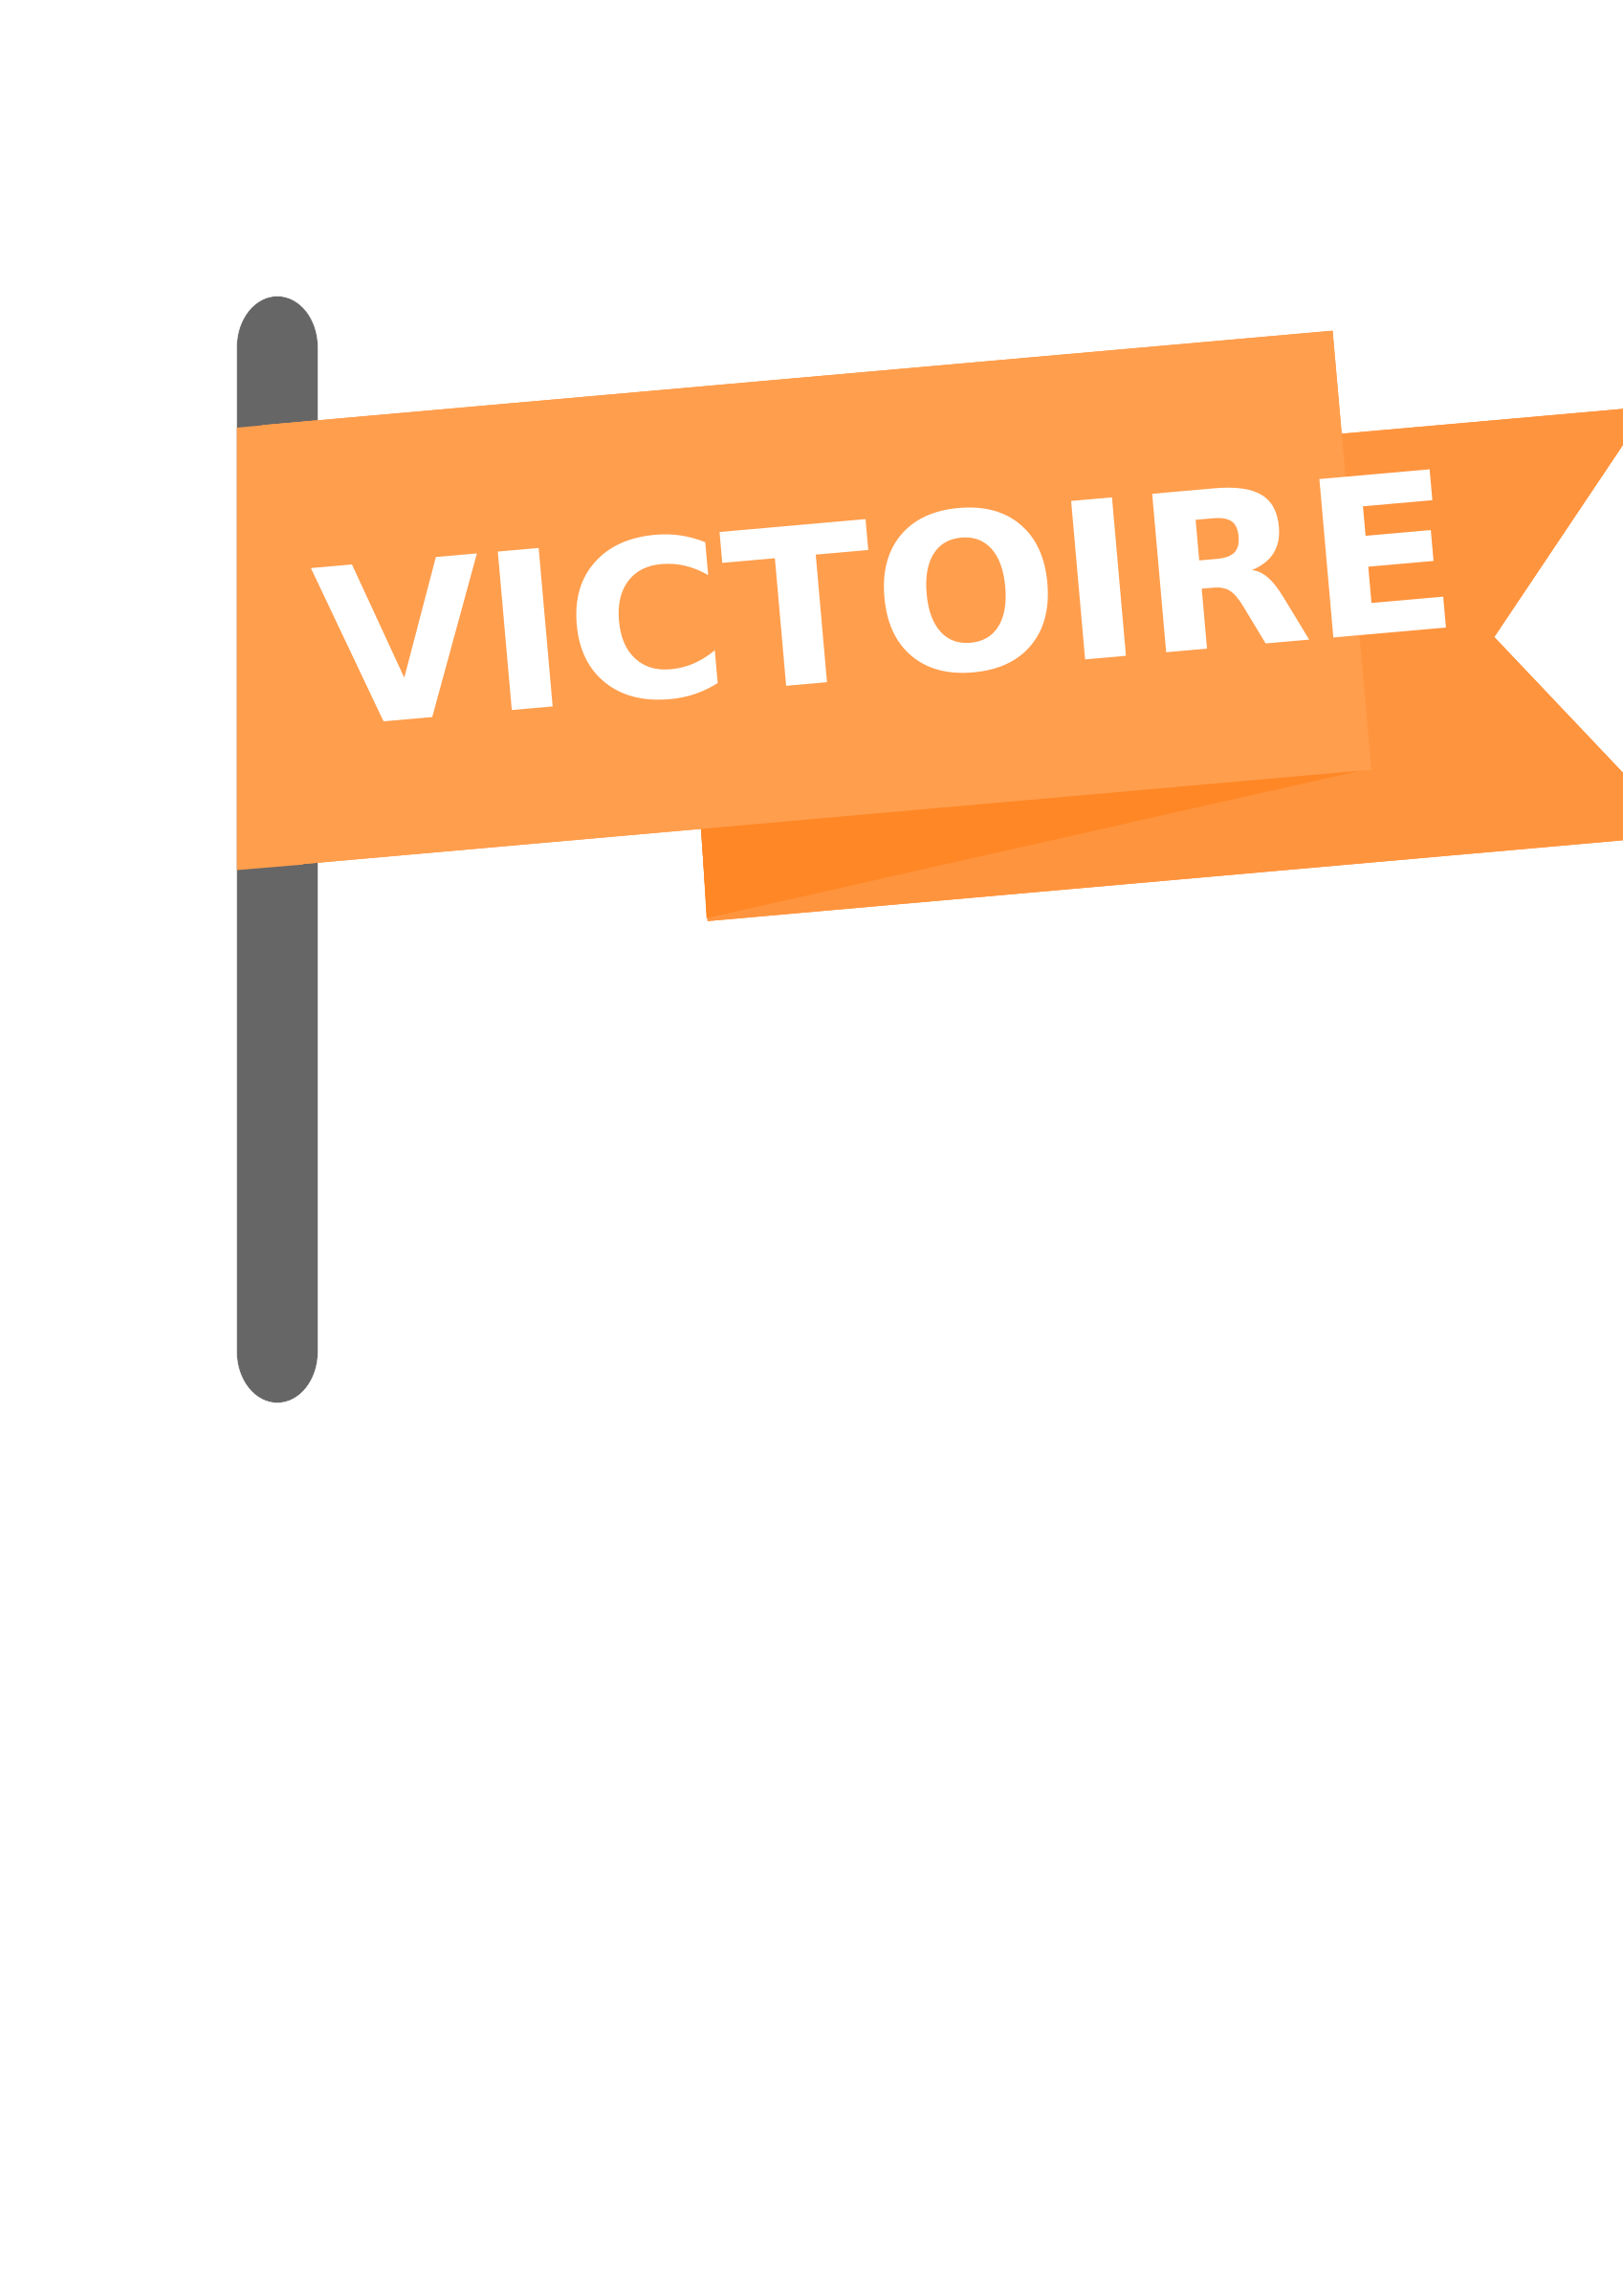 Drapeau victoire / Victory win flag by ElodieVentura